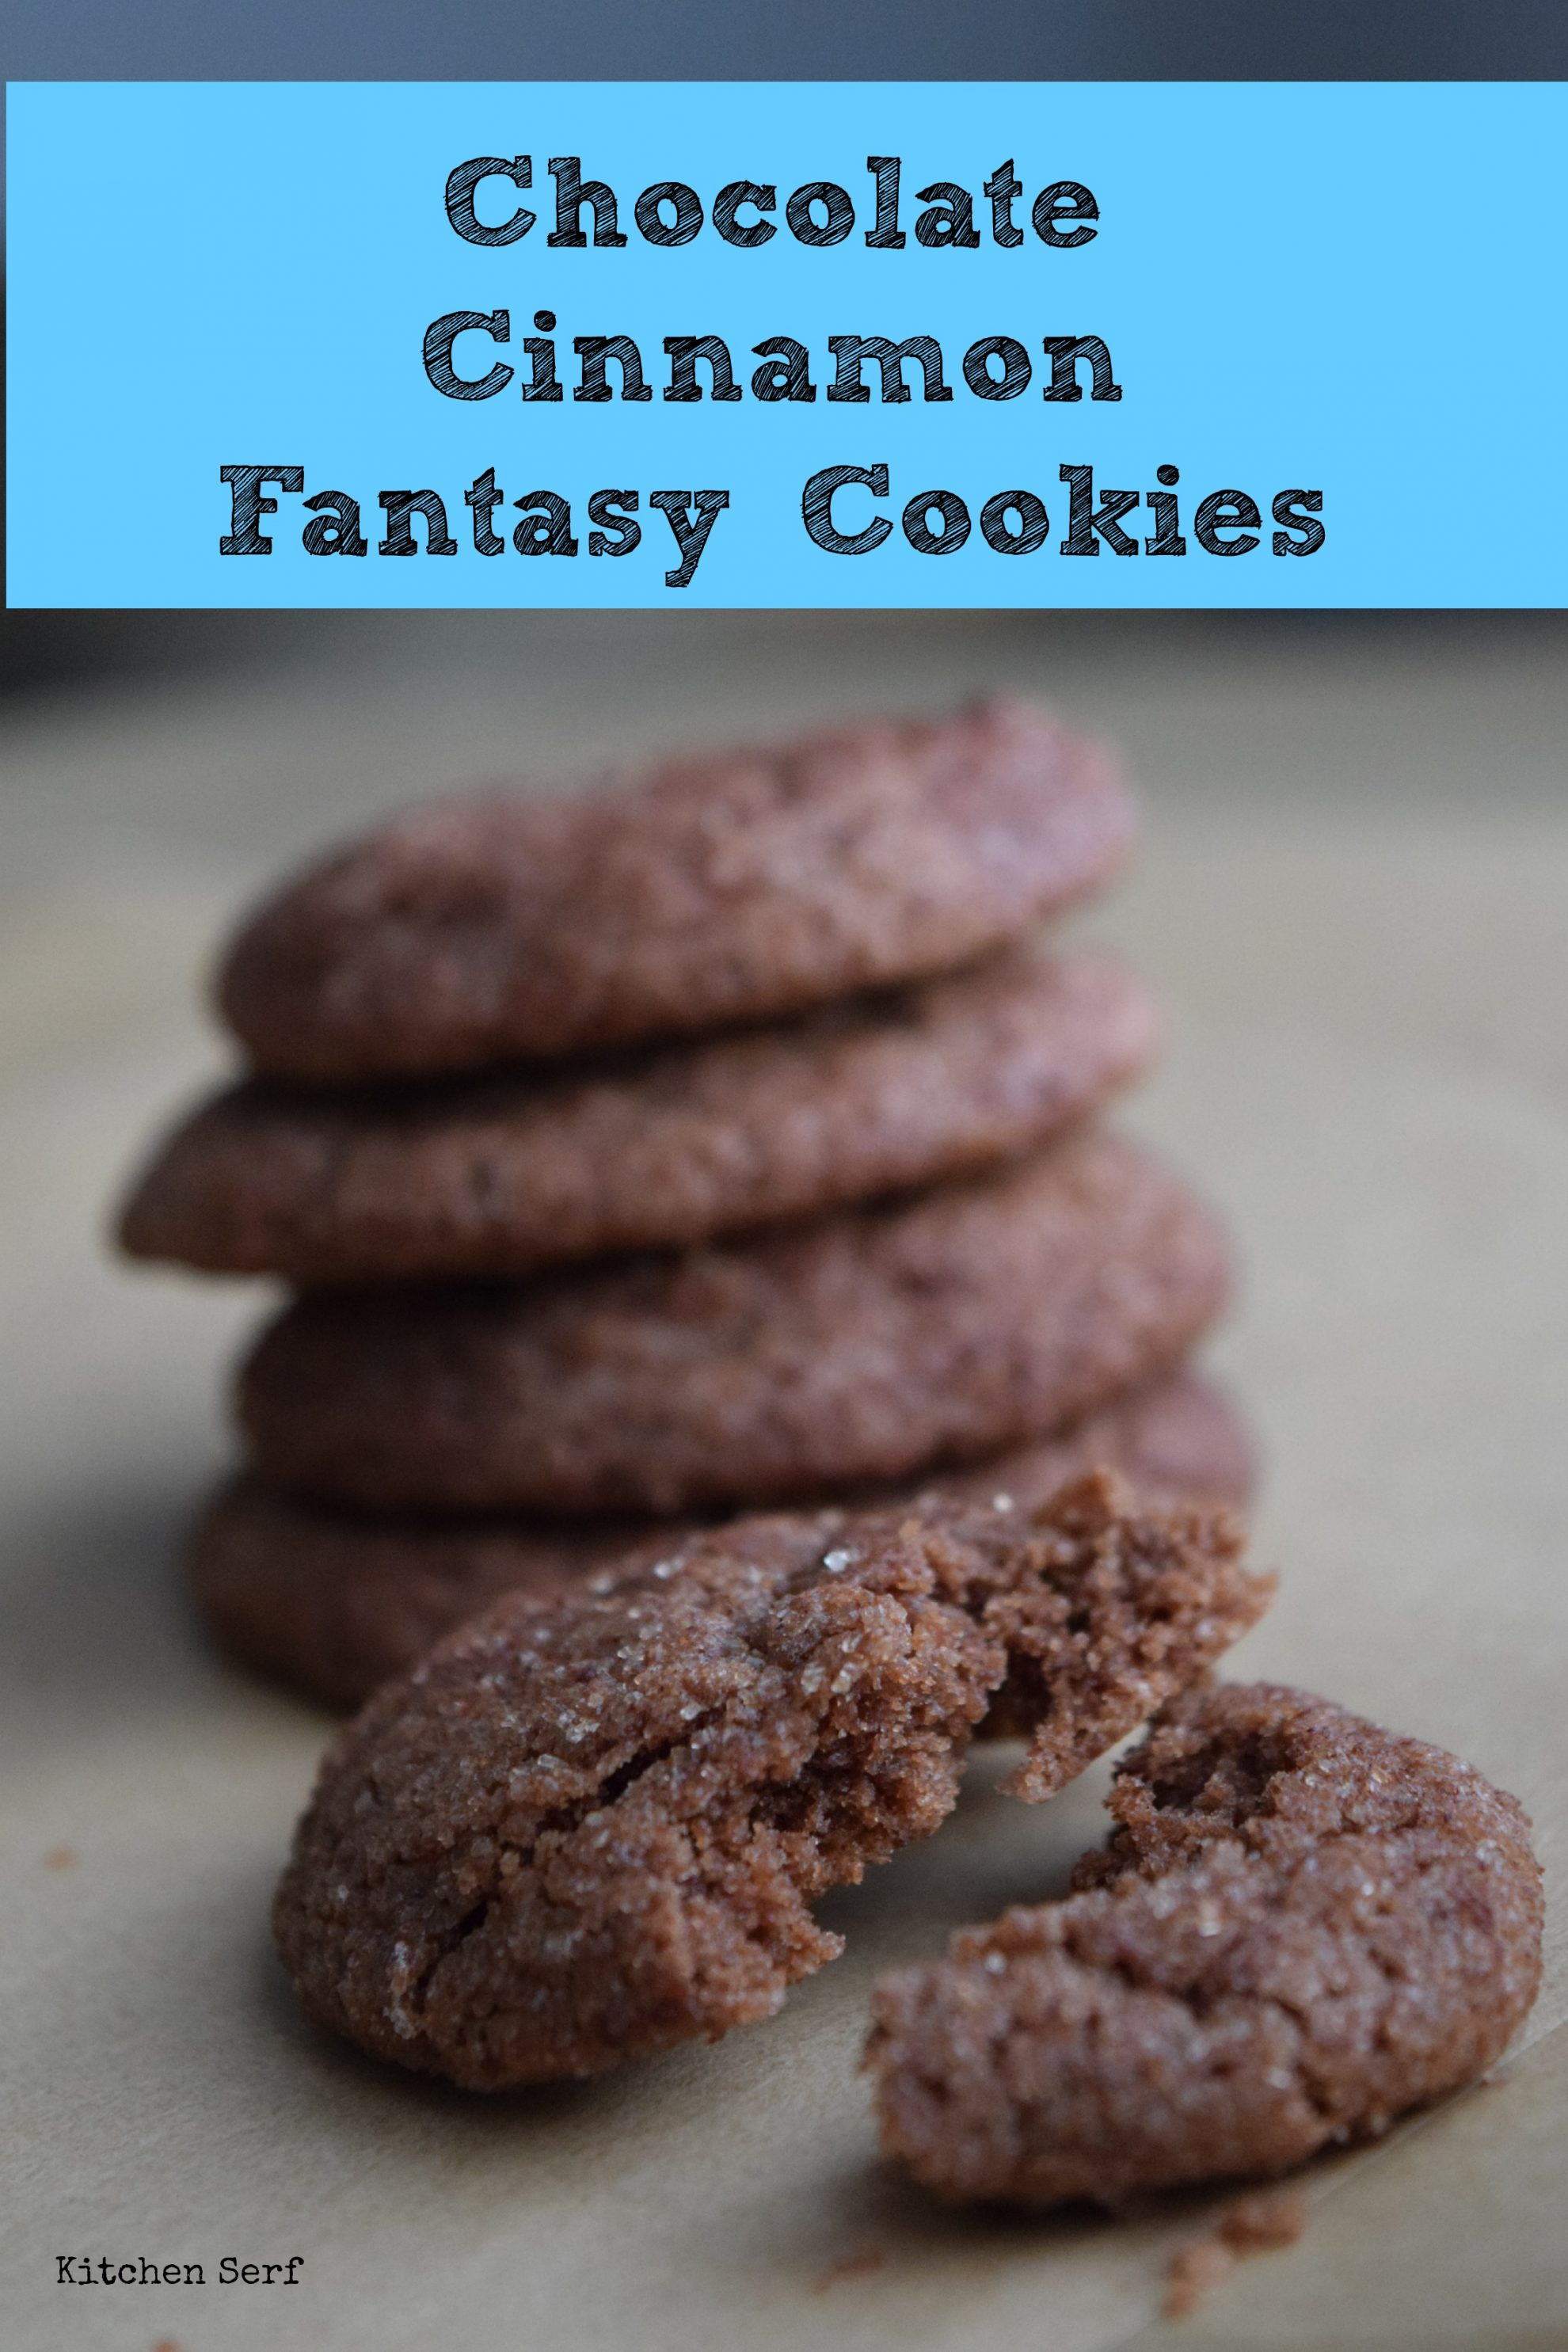 Chocolate Cinnamon Fantasy Cookies